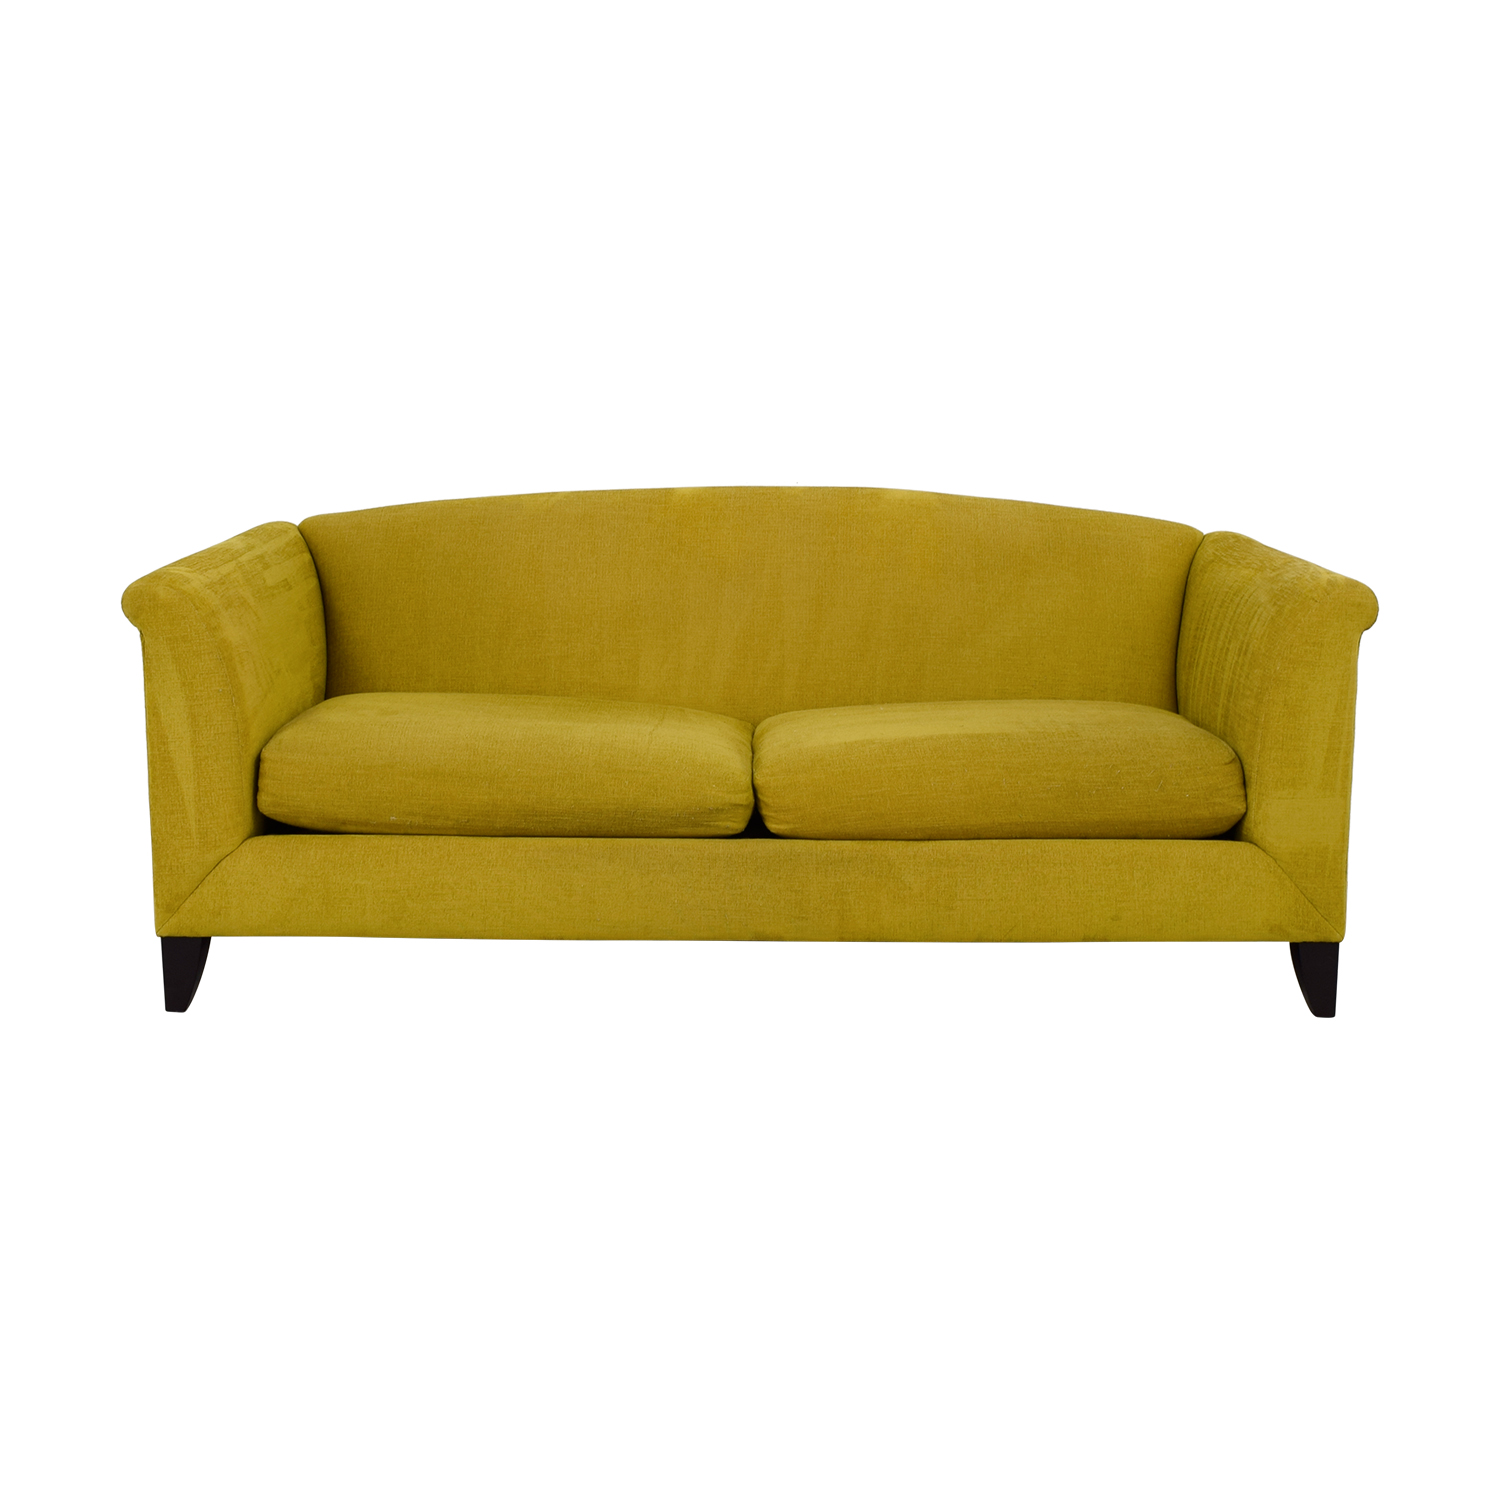 Crate & Barrel Silhouette Yellow Two-Cushion Sofa / Classic Sofas